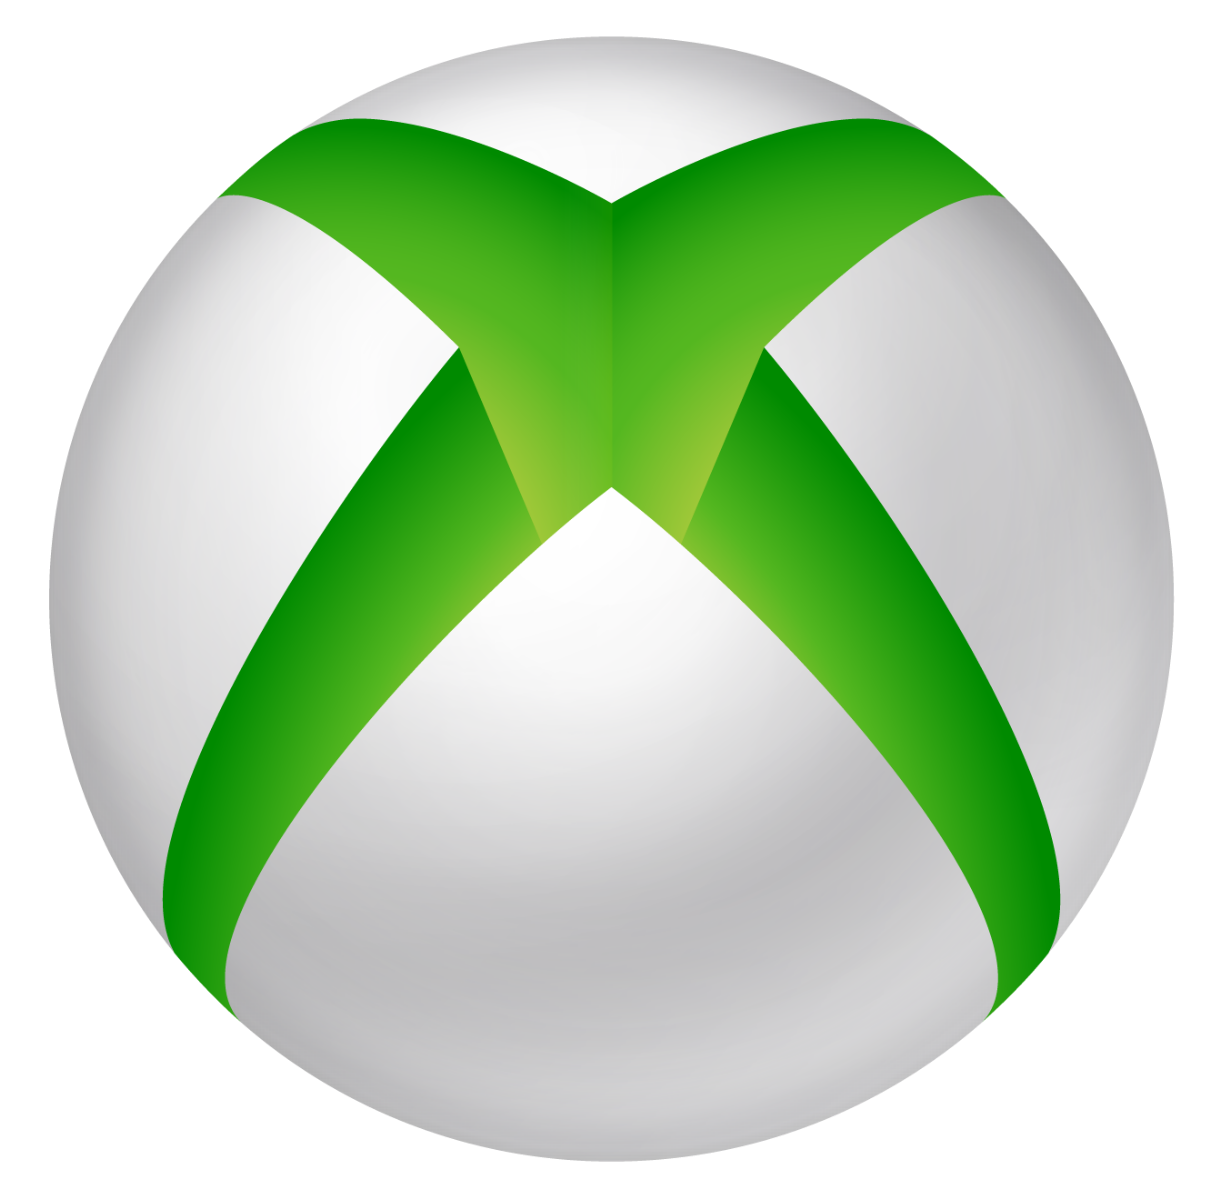 xbox png images free download, xbox gamepad png #2487